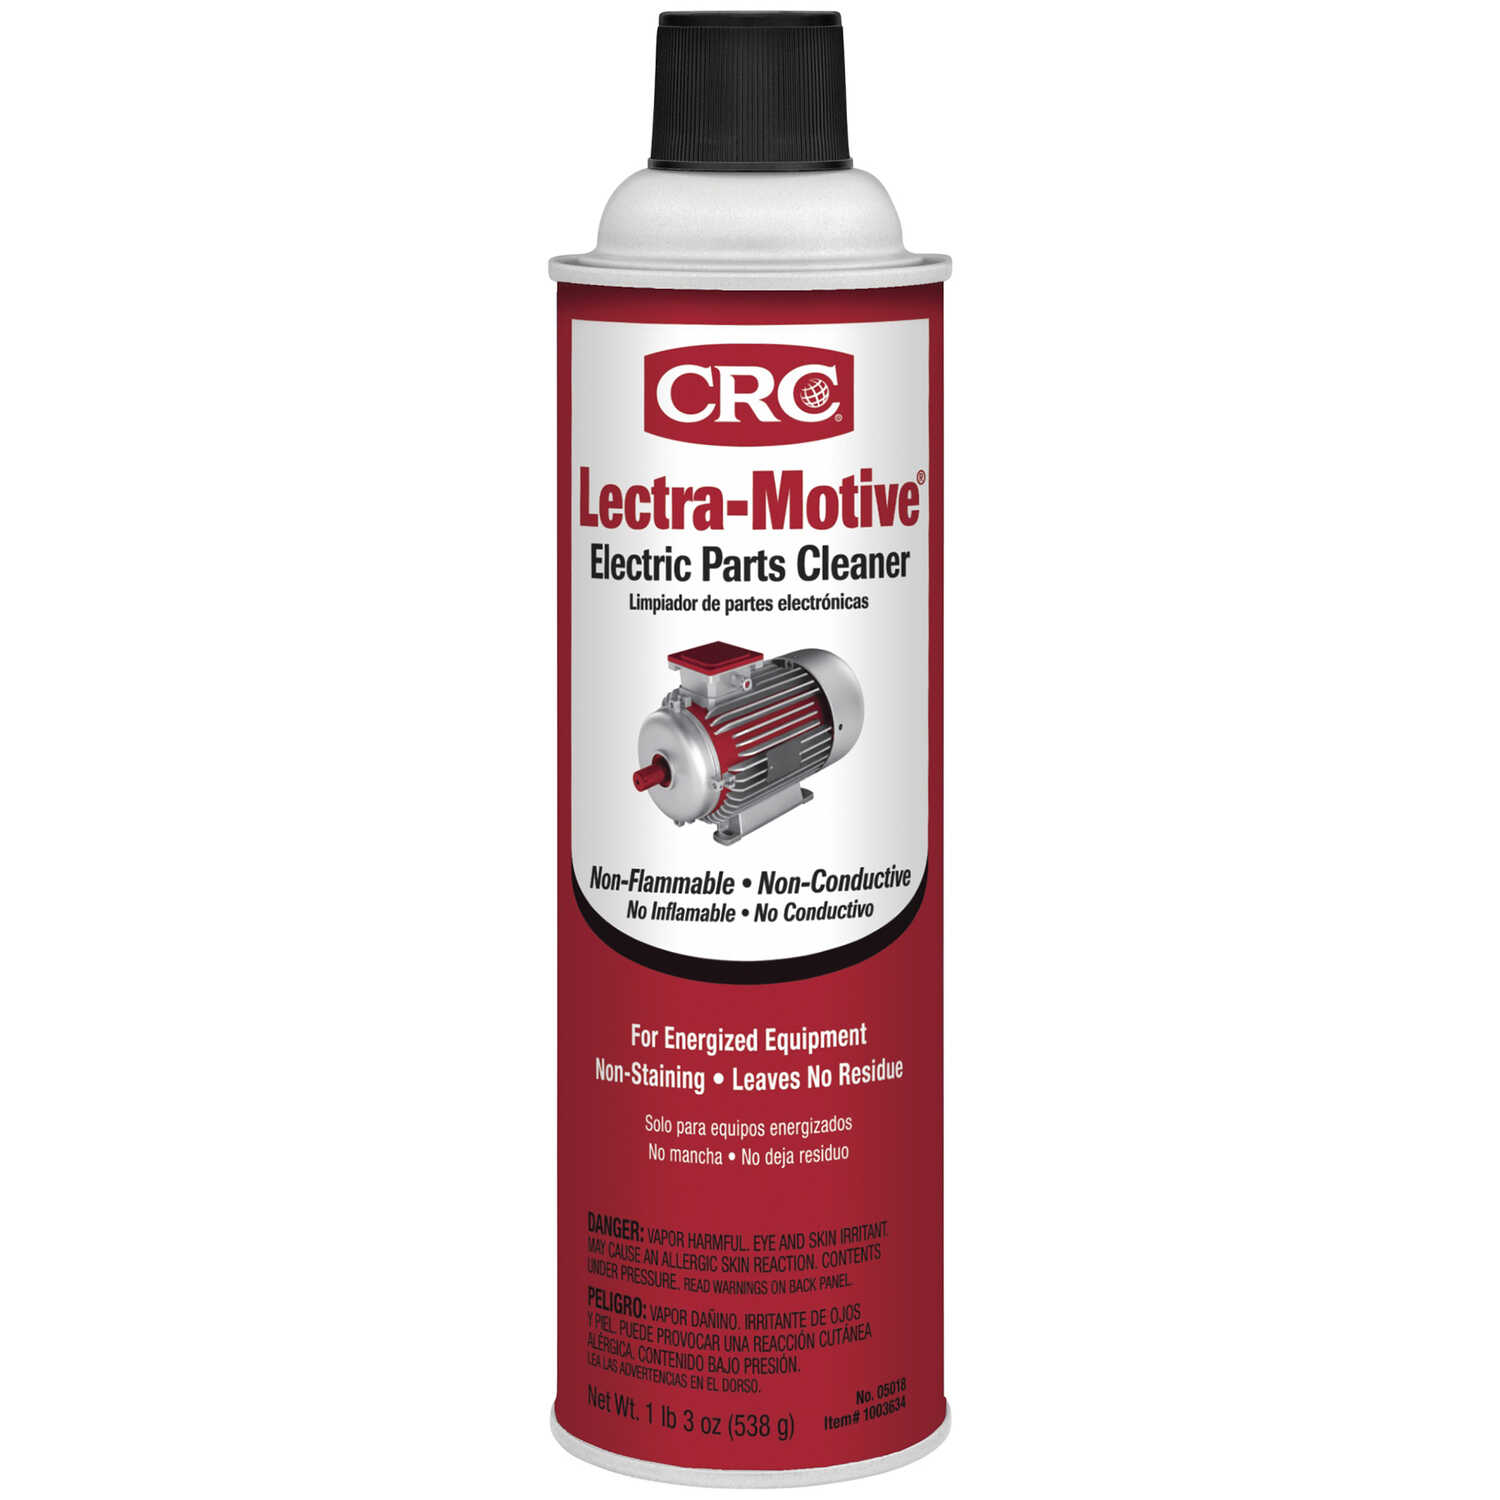 CRC  Lectra-Motive  Chlorinated Nonflammable Electrical Parts Cleaner  20 oz.